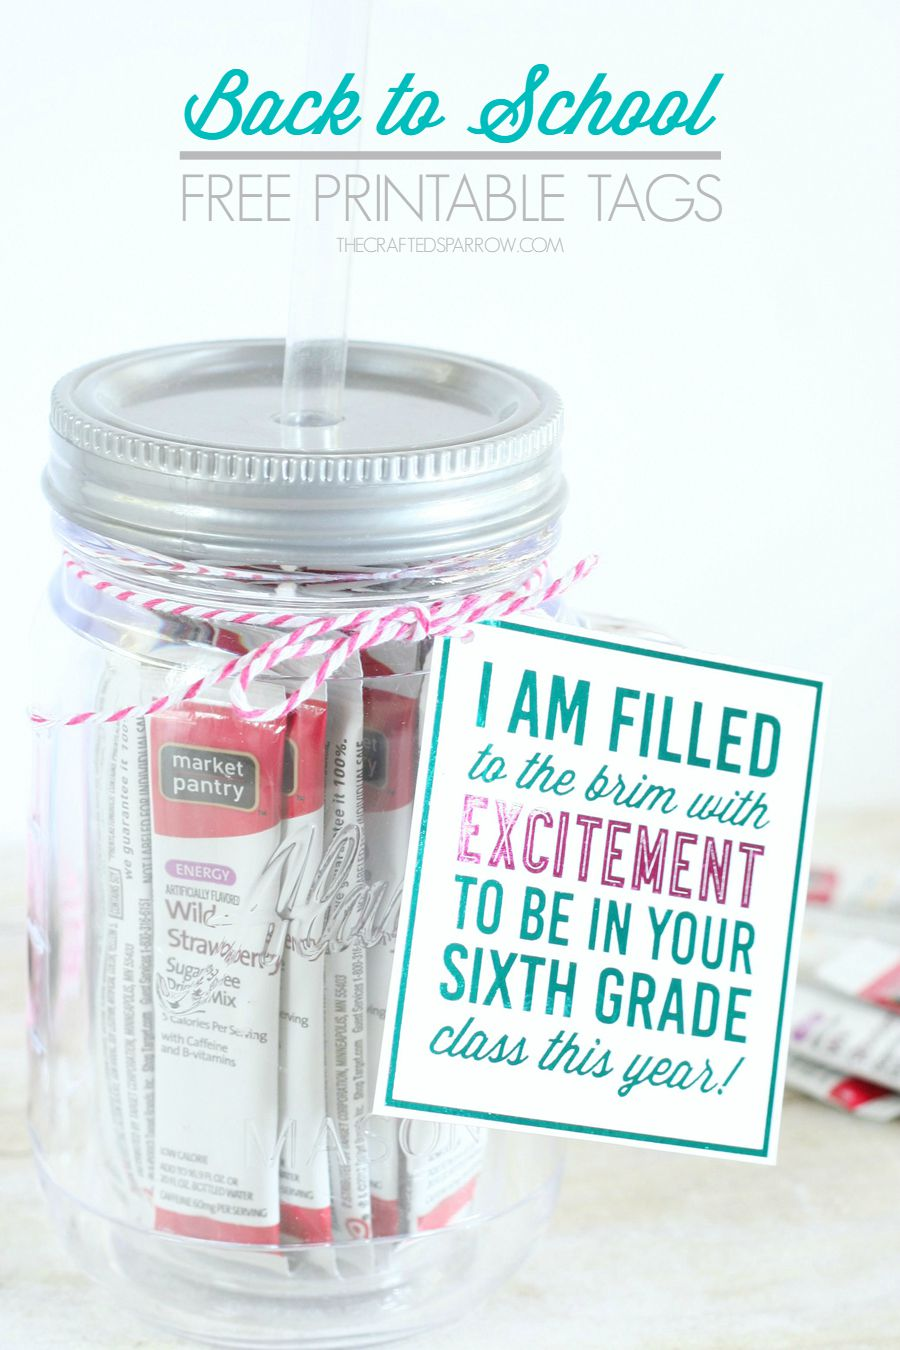 Back to School Free Printable Tags